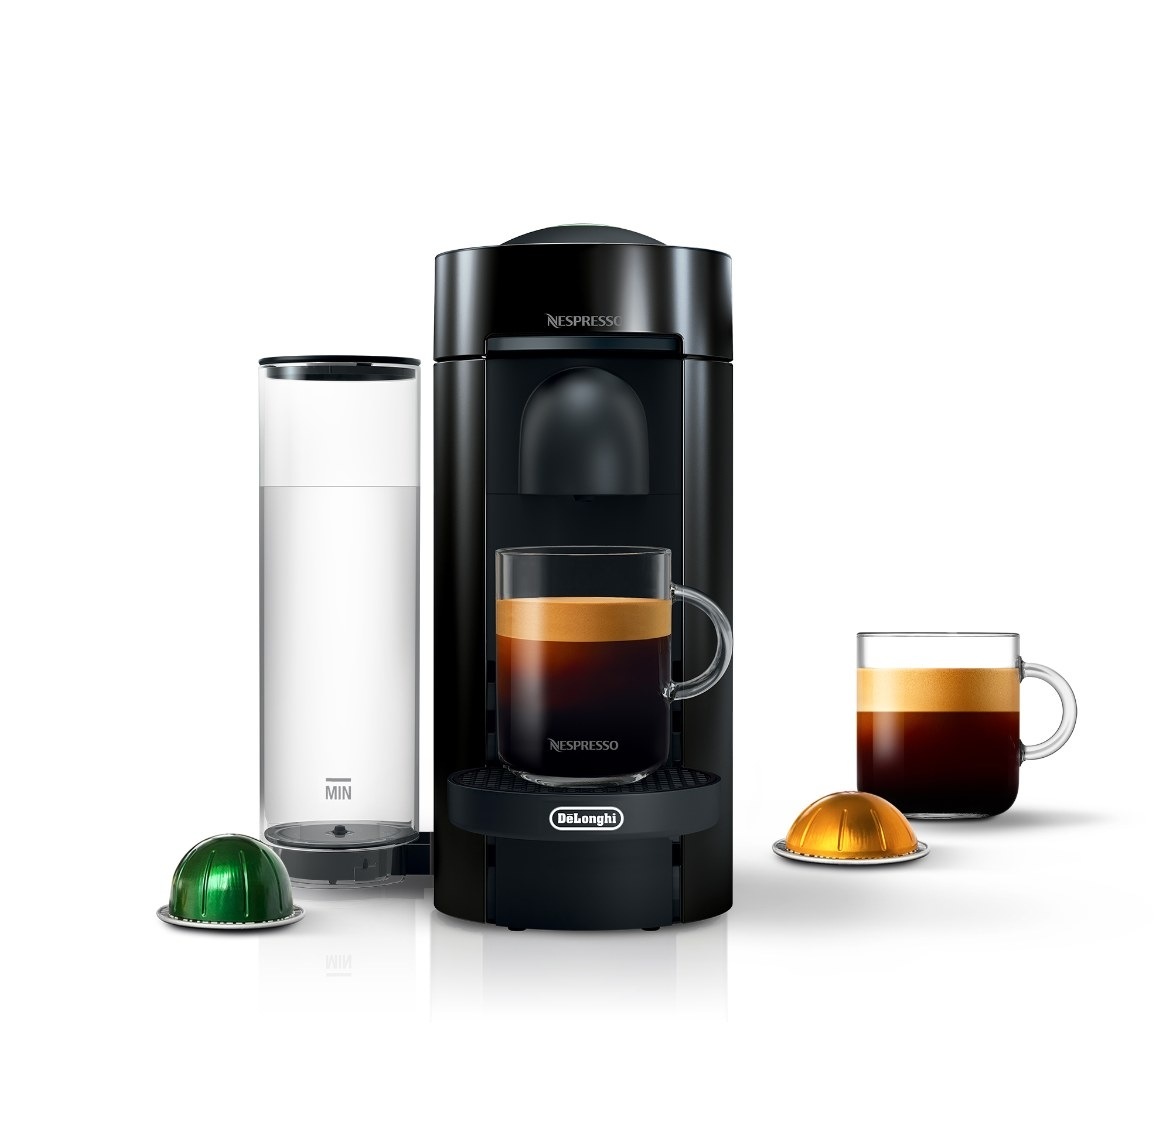 The Nespresso VerturoPlus in black with coffee pods